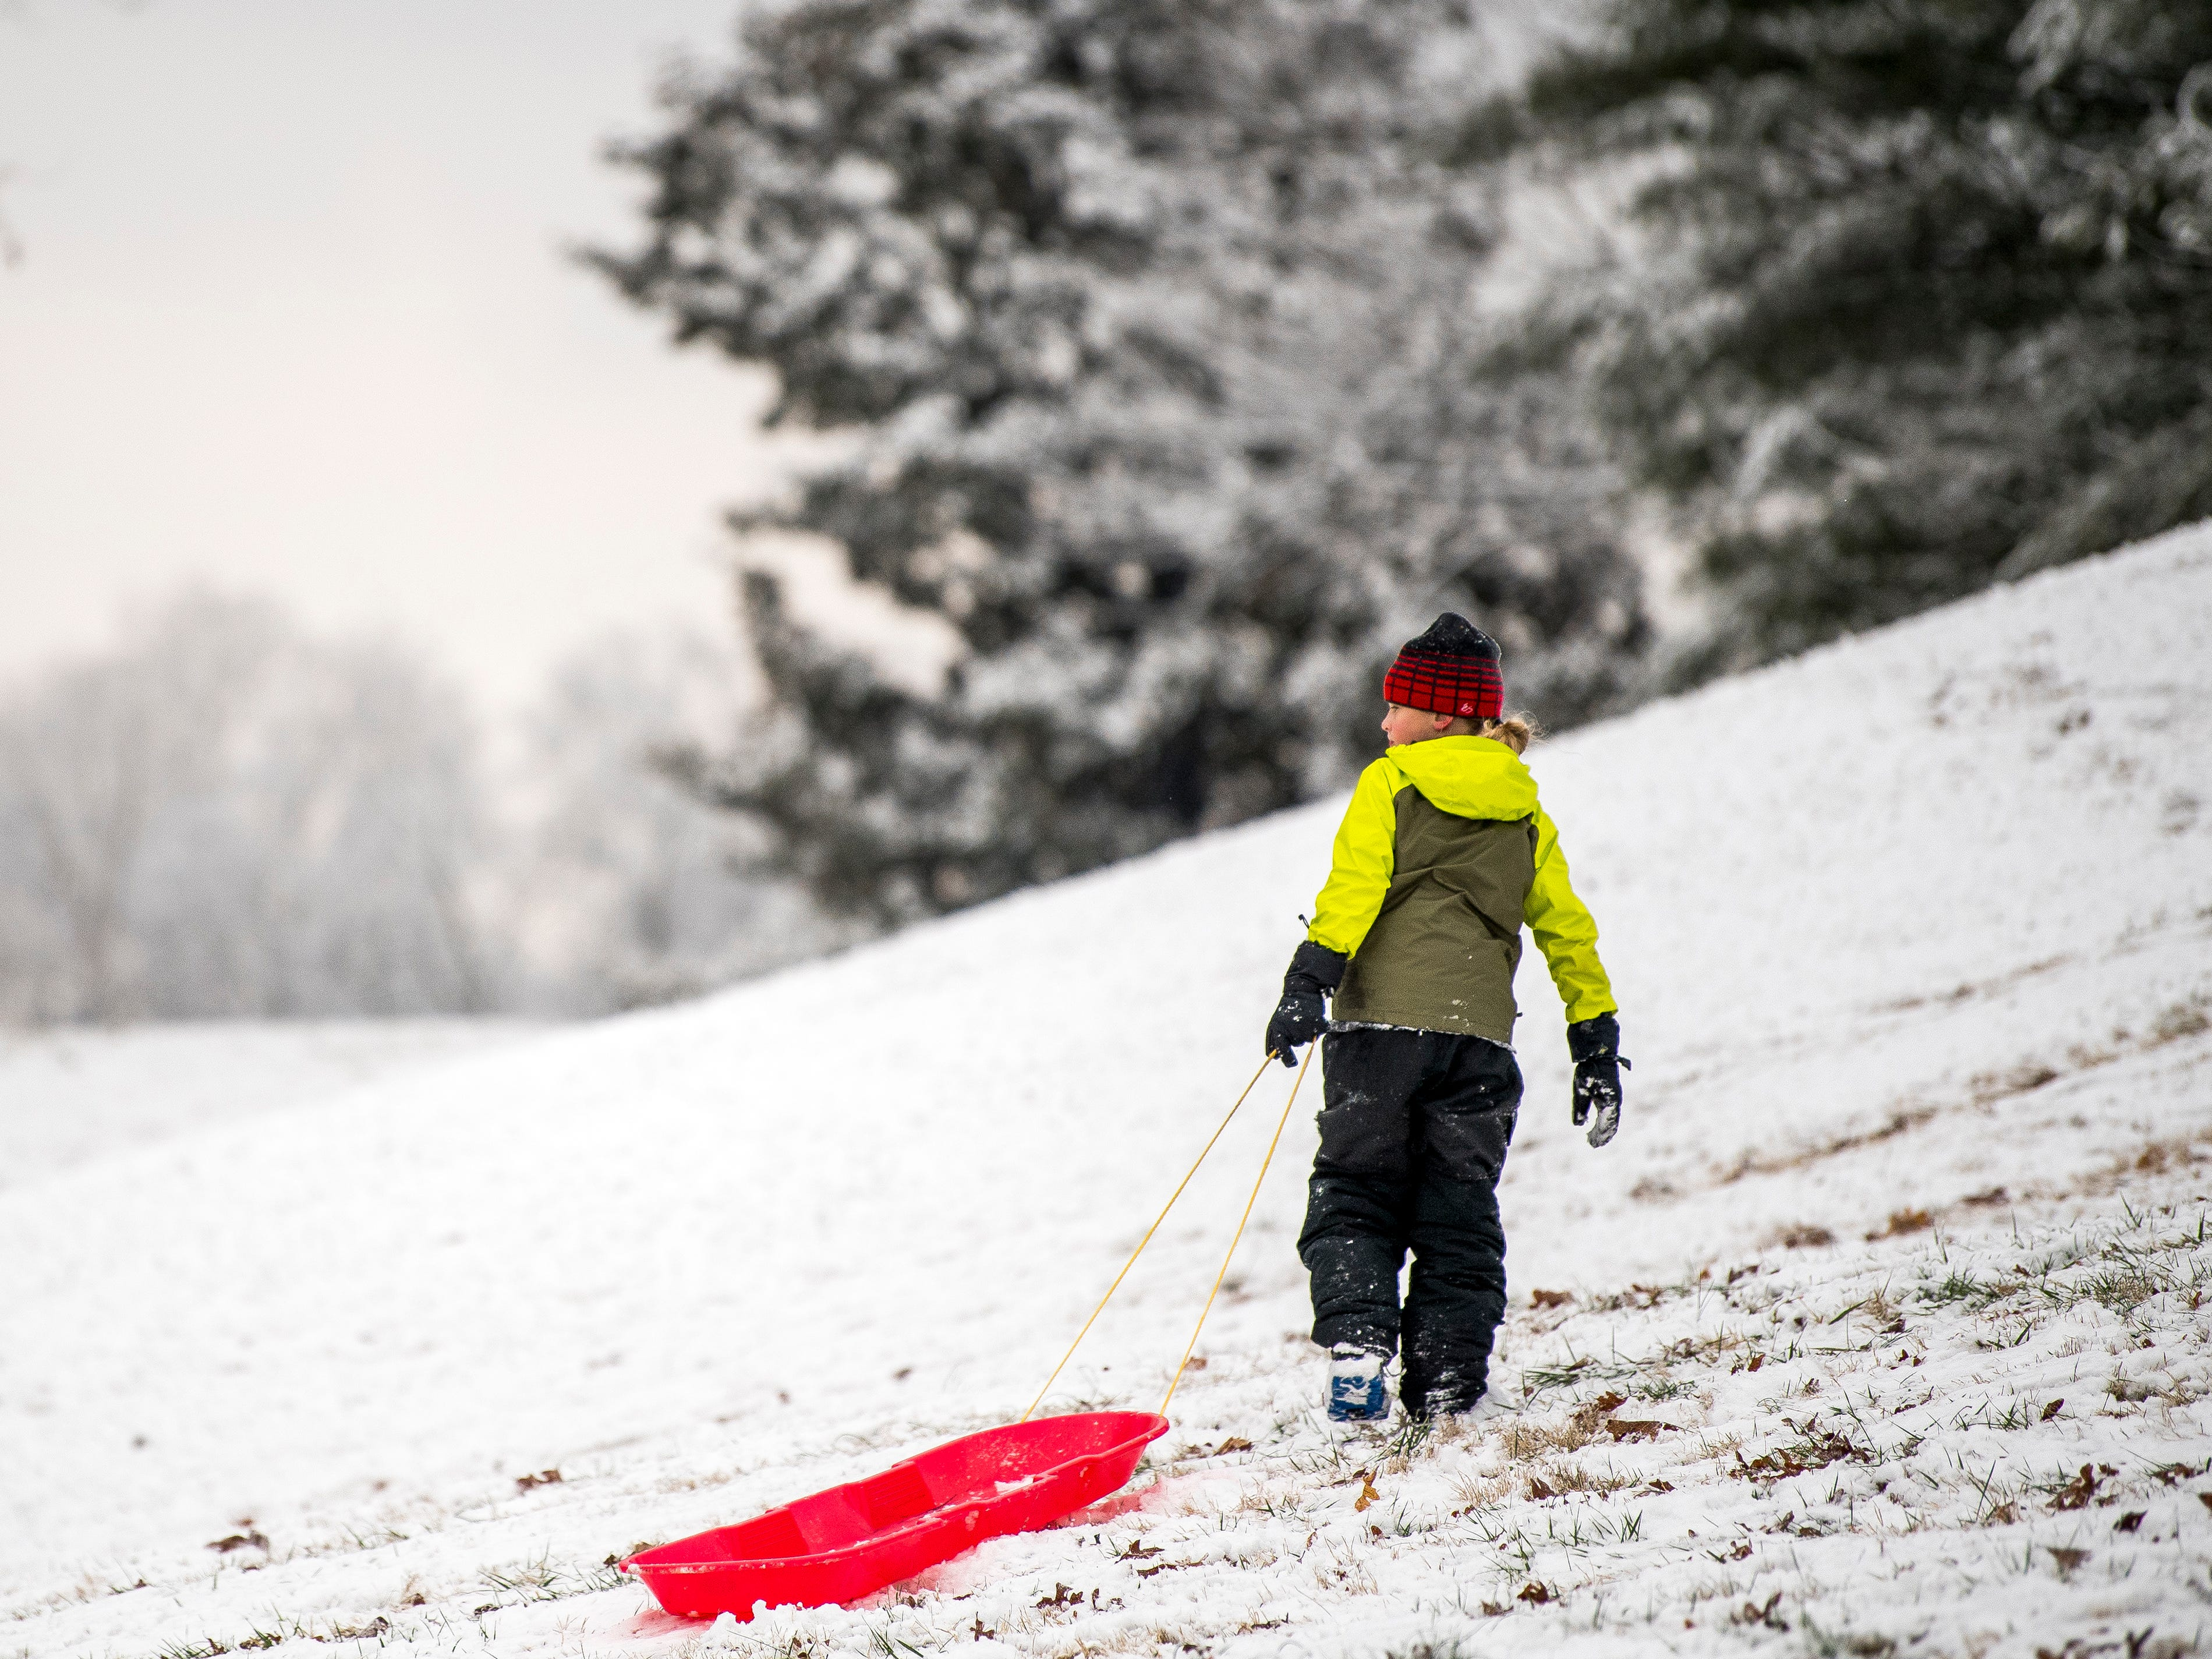 A boy watches as others sled down a steep hill at Lakeshore Park in Knoxville on Tuesday, January 29, 2019.